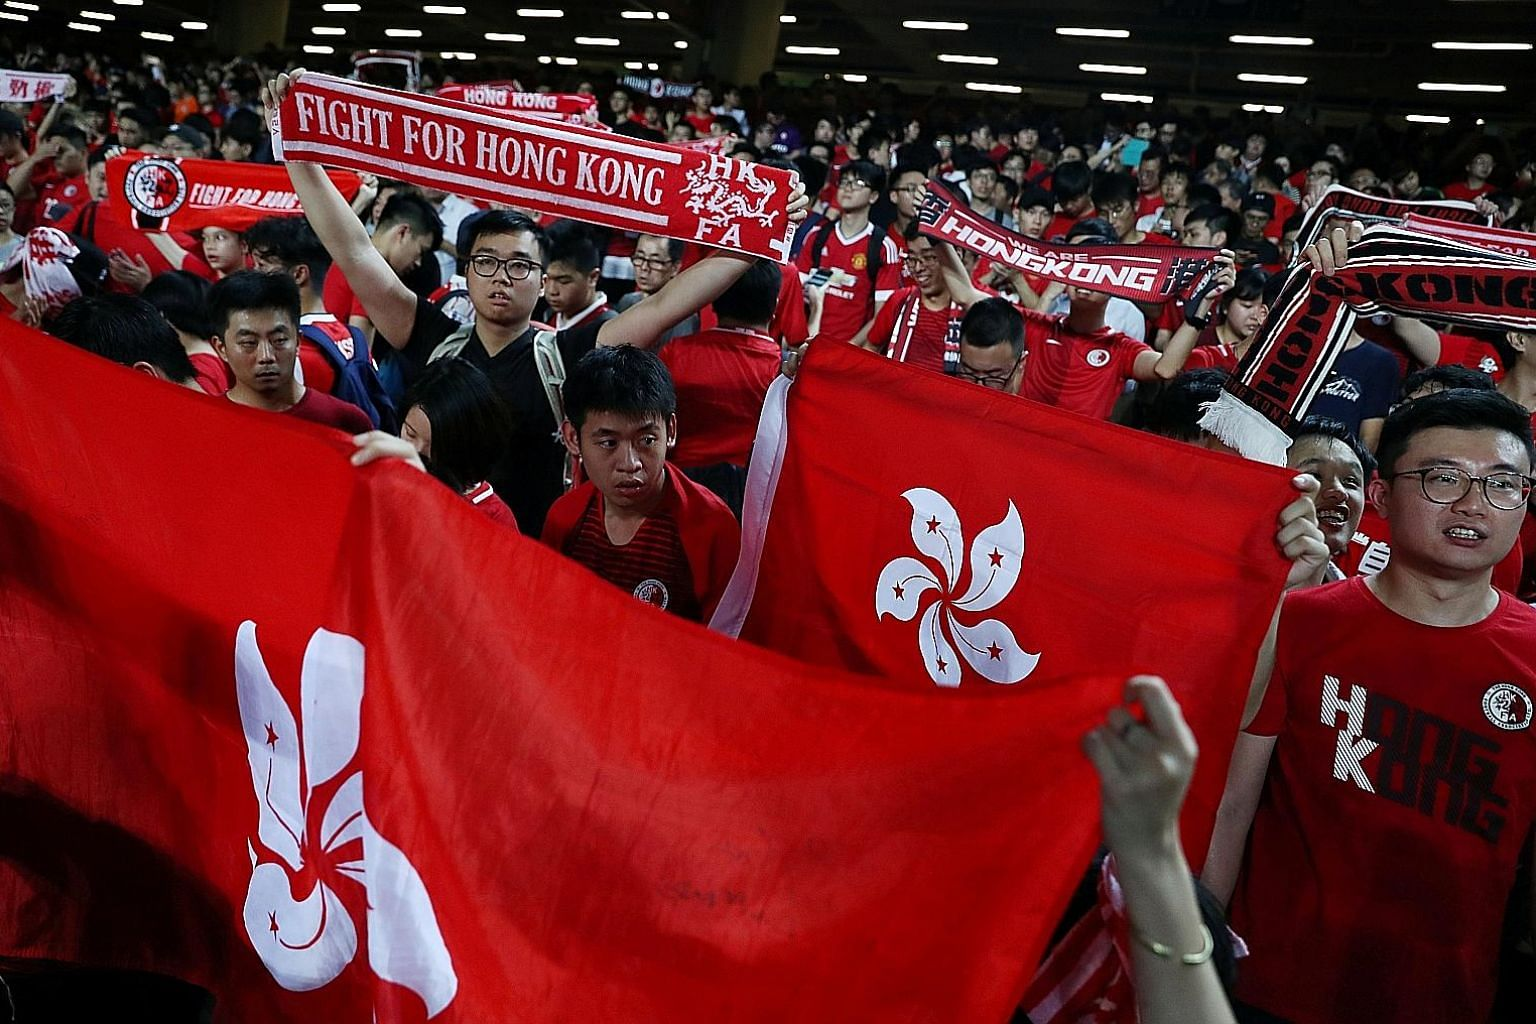 Football fans in Hong Kong Stadium yesterday showing support for anti-government protesters as Hong Kong took on Iran in a World Cup qualifier.